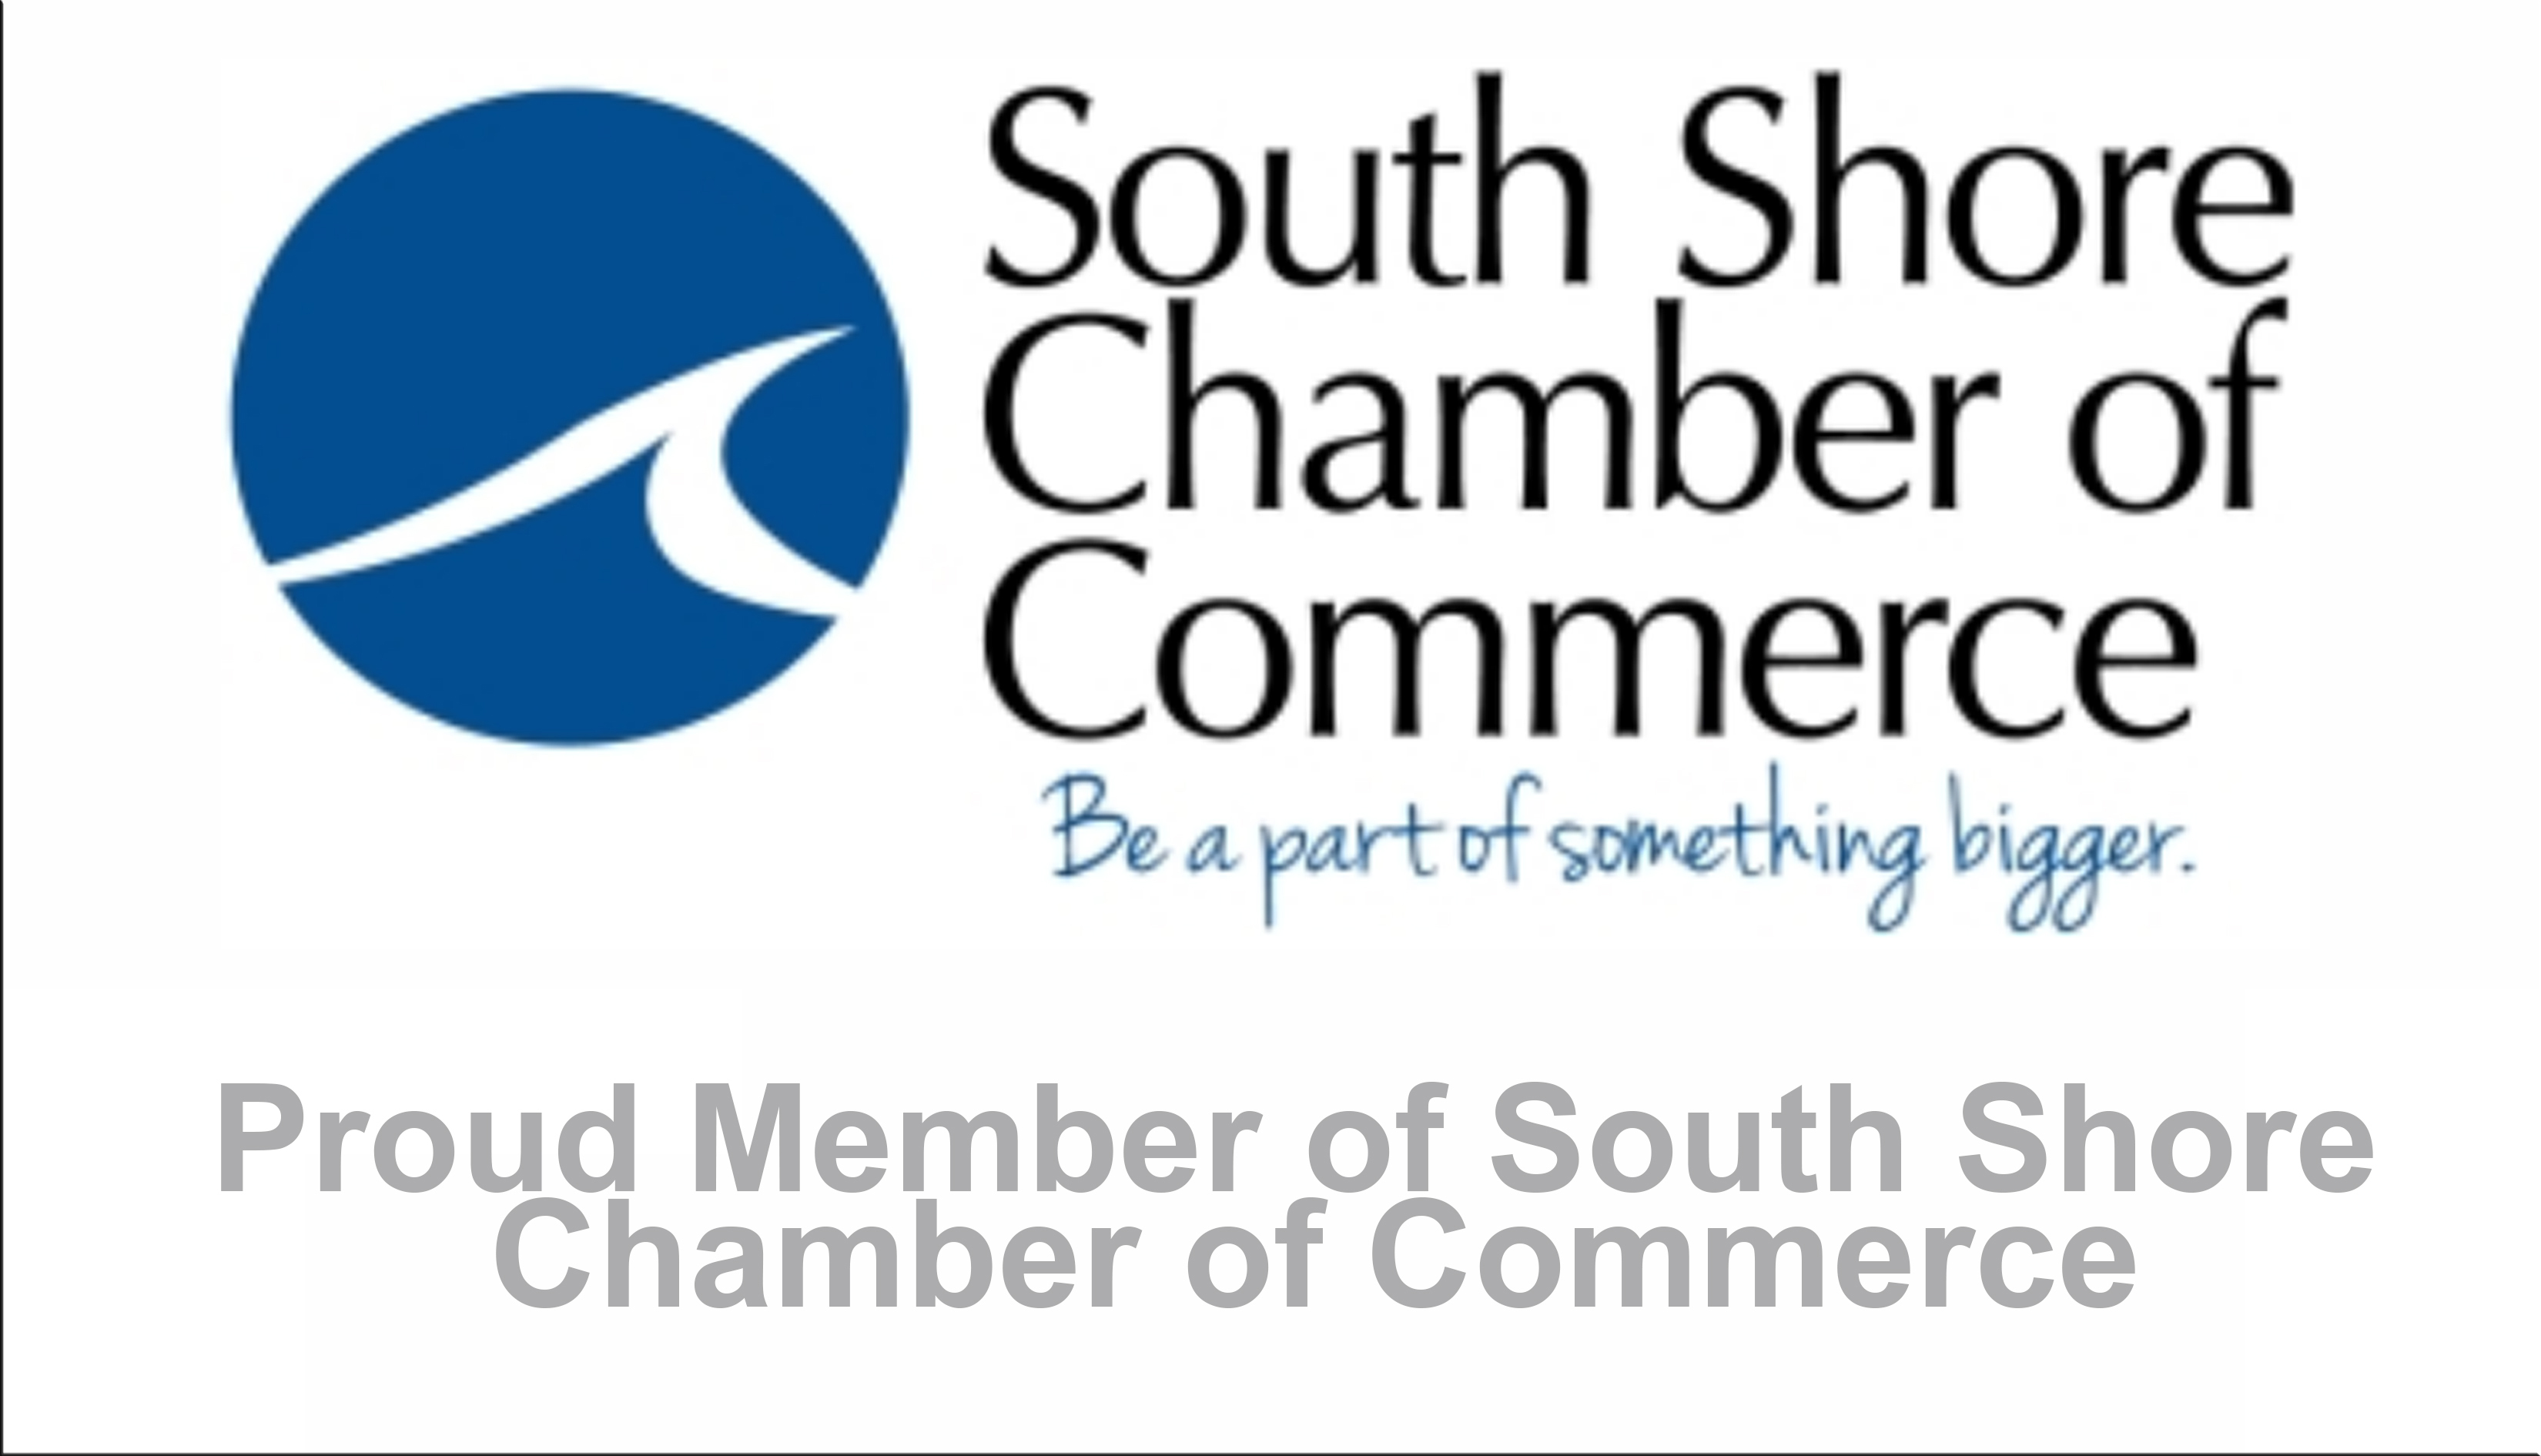 Proud Member of South Shore Chamber of Commerce